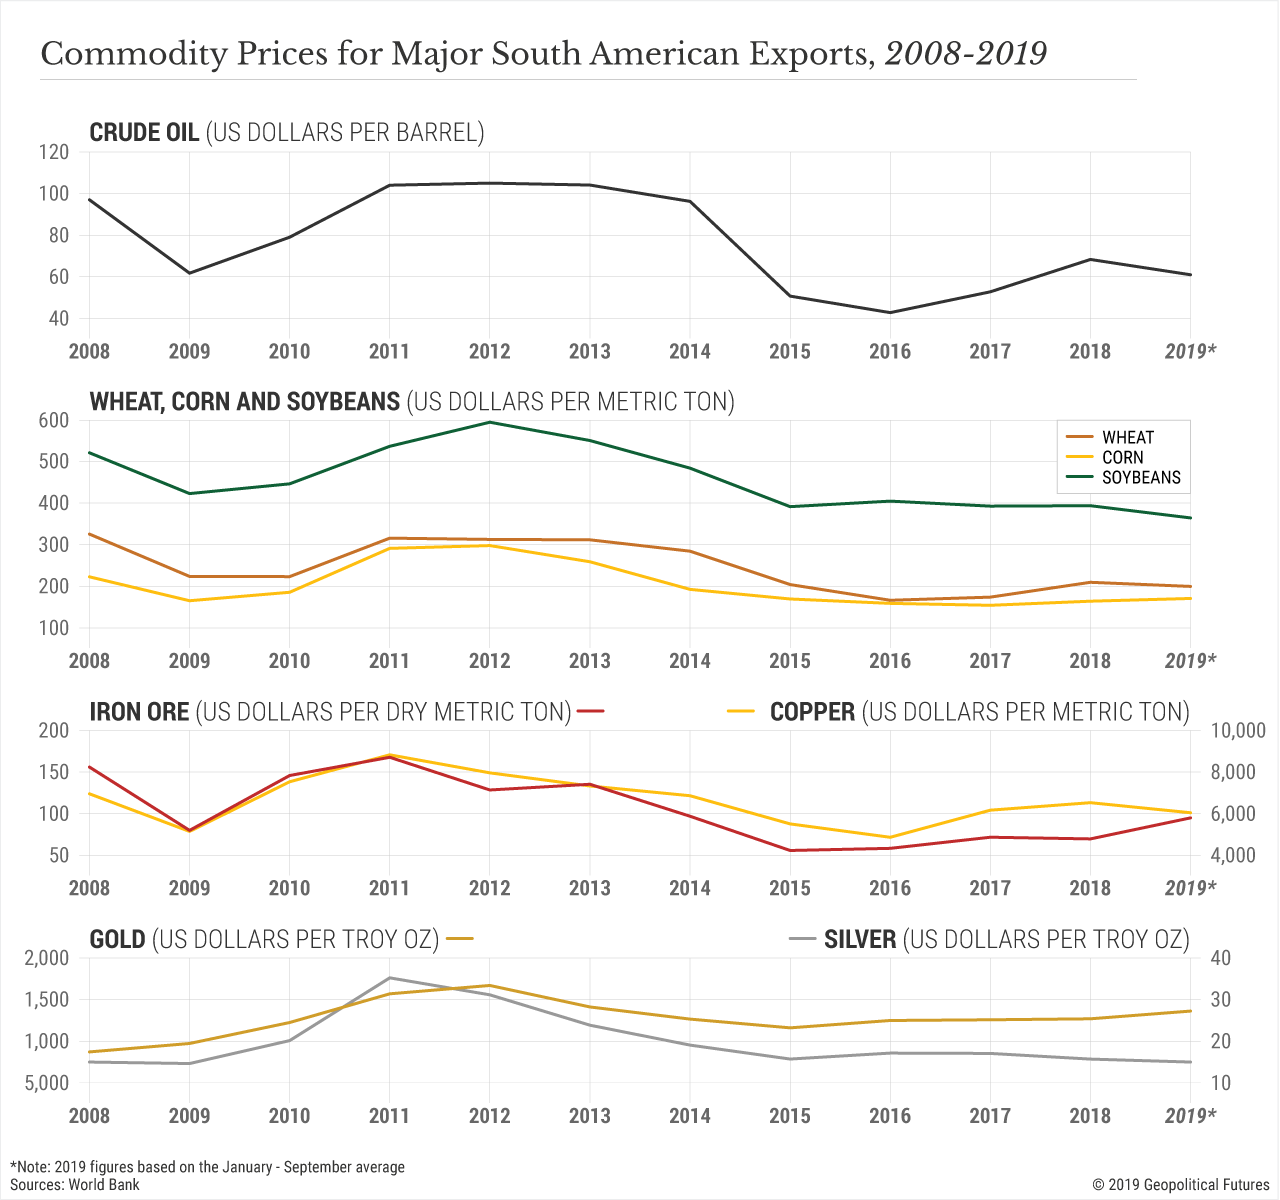 Commodity Prices for Major South American Exports, 2008-2019